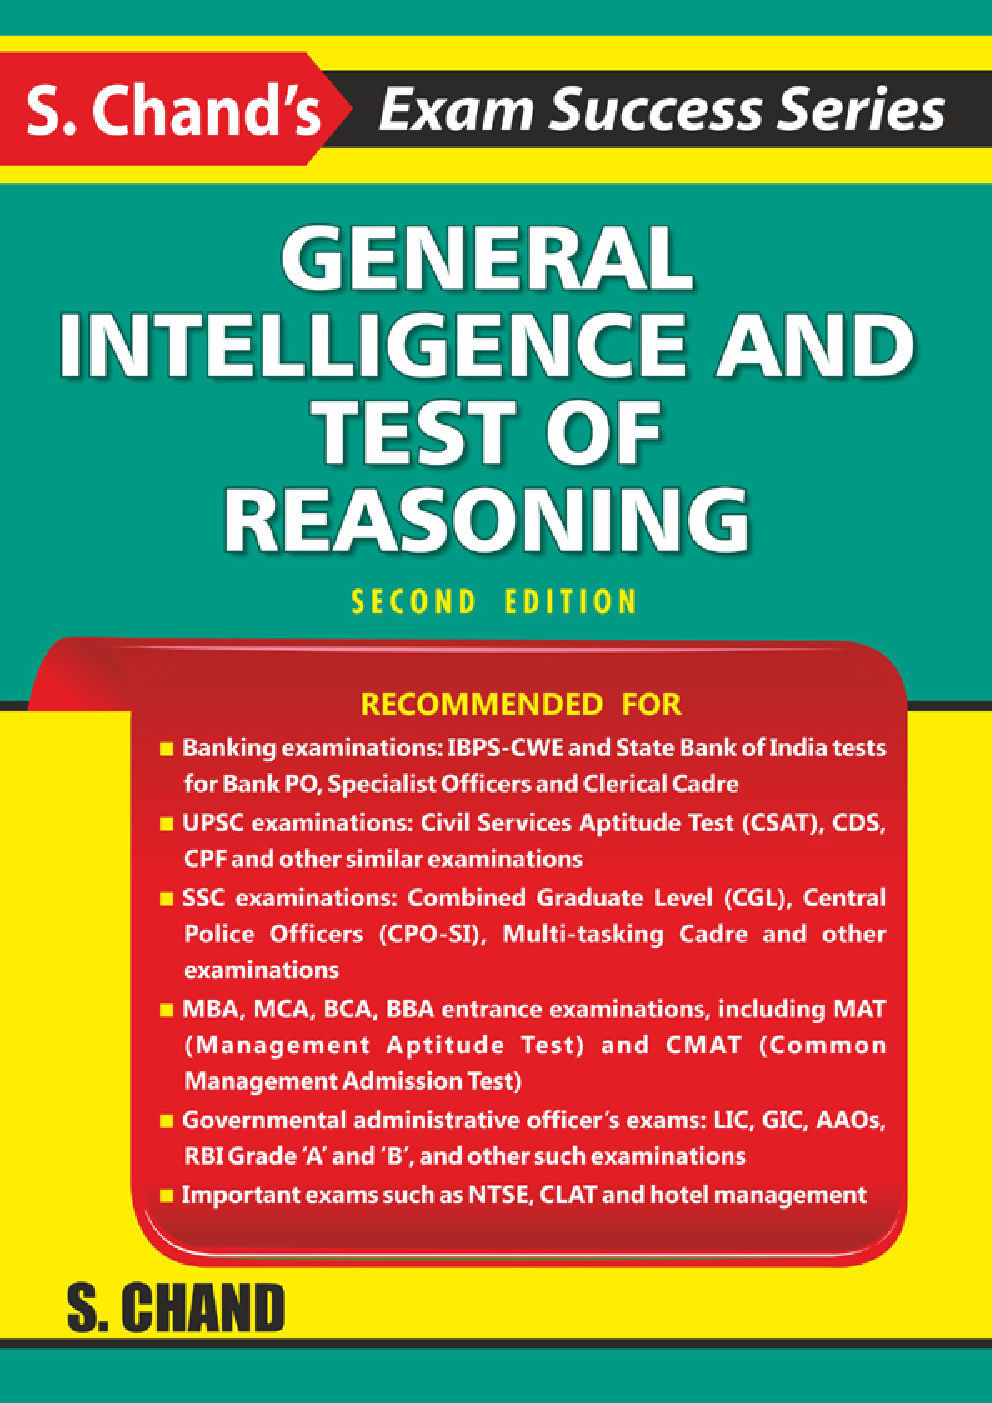 General Intelligence And Test Of Reasoning - Page 1